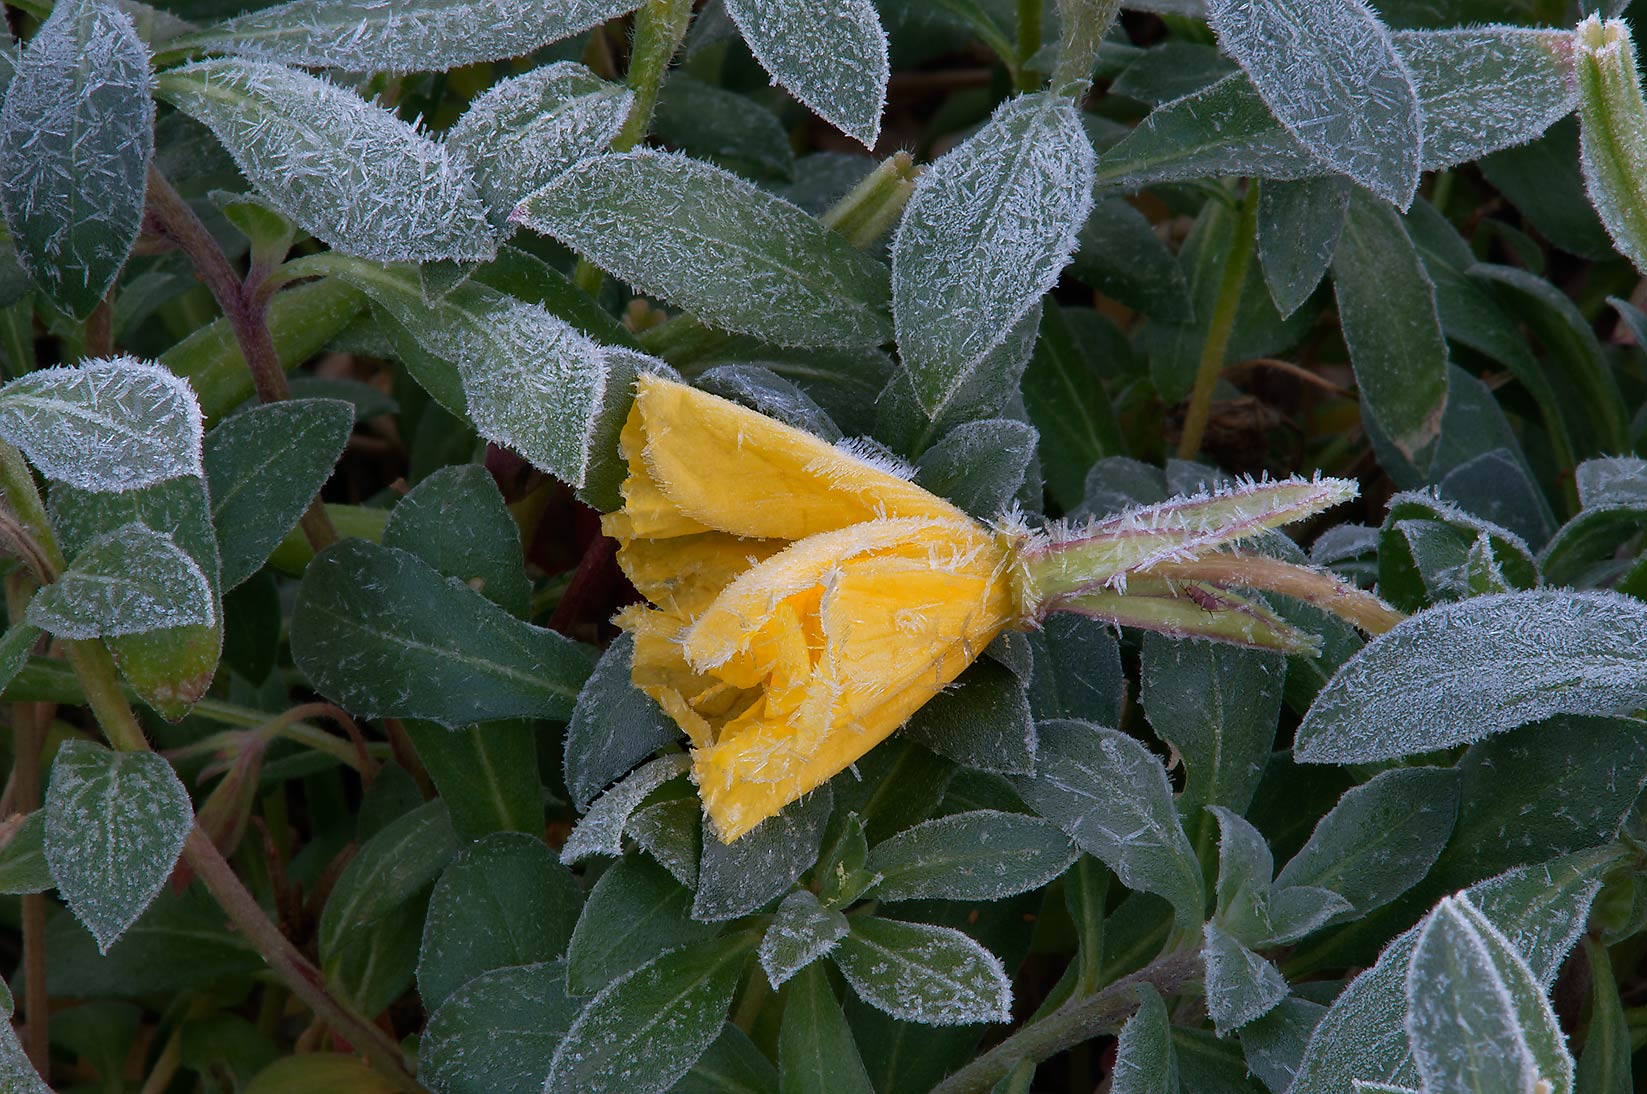 Frozen evening primrose (Oenothera) in TAMU...M University. College Station, Texas